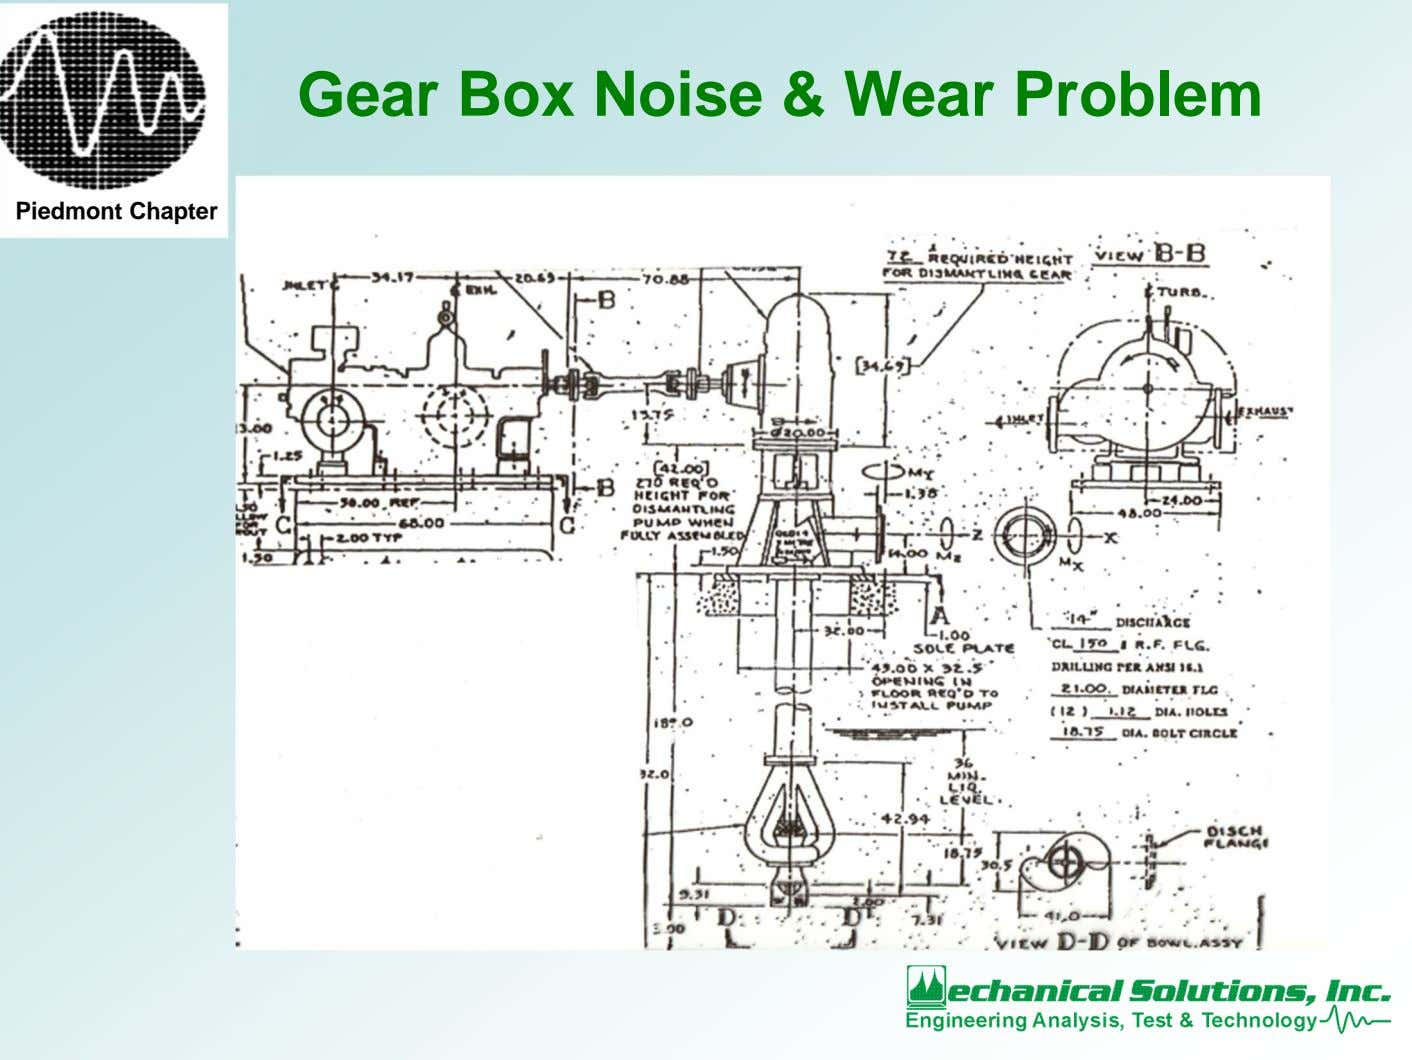 Gear Box Noise & Wear Problem Piedmont Chapter